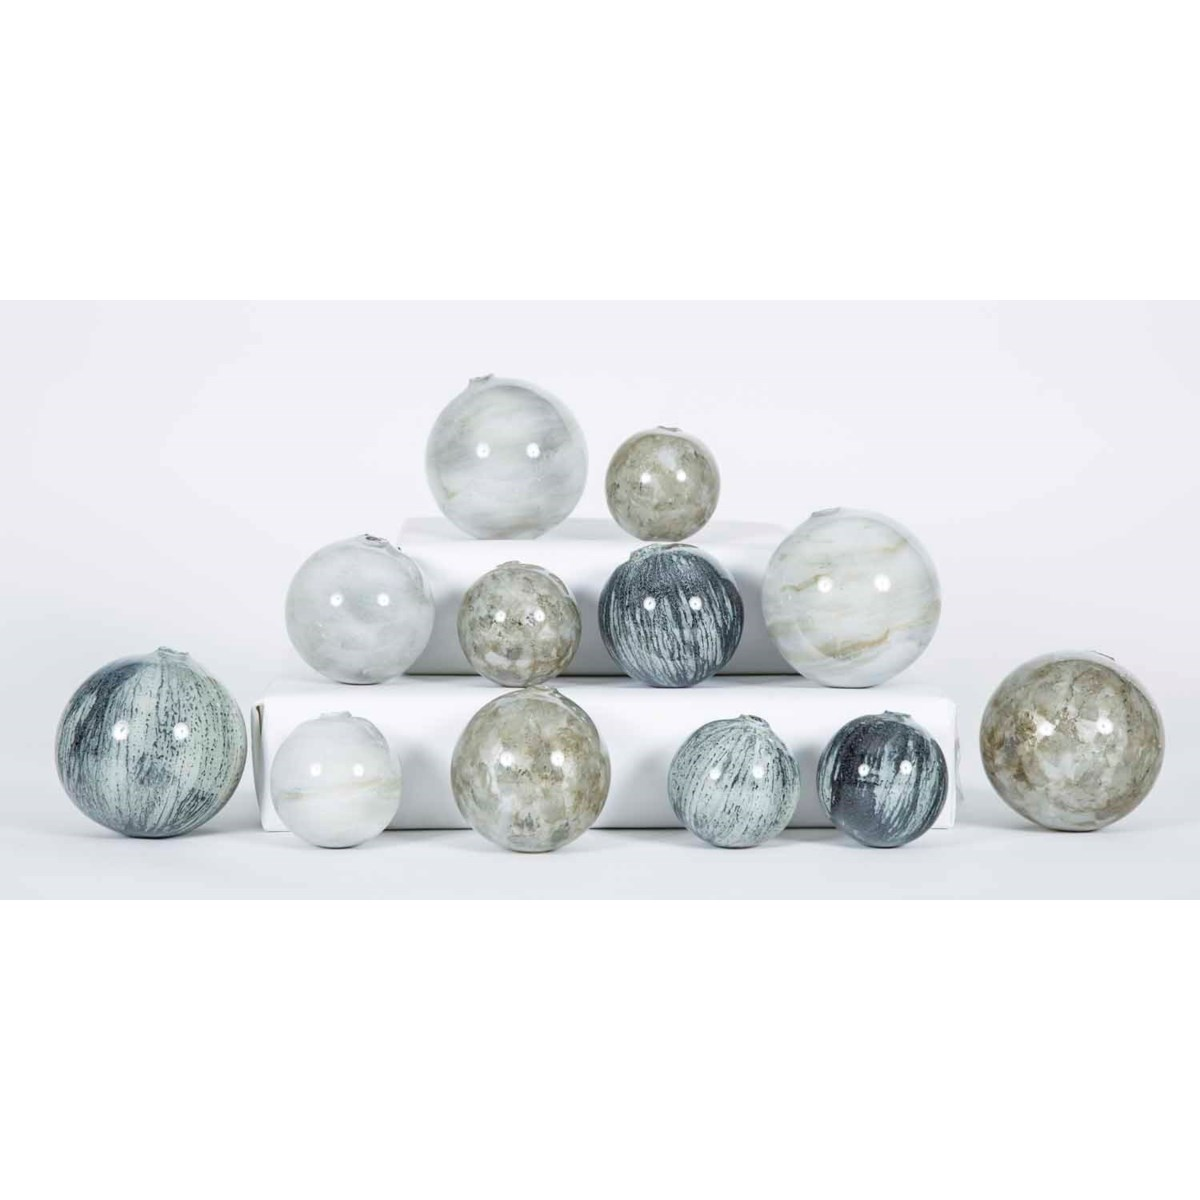 Set of 12 Spheres in Black Sand, Oyster Shell and Smoke Finish